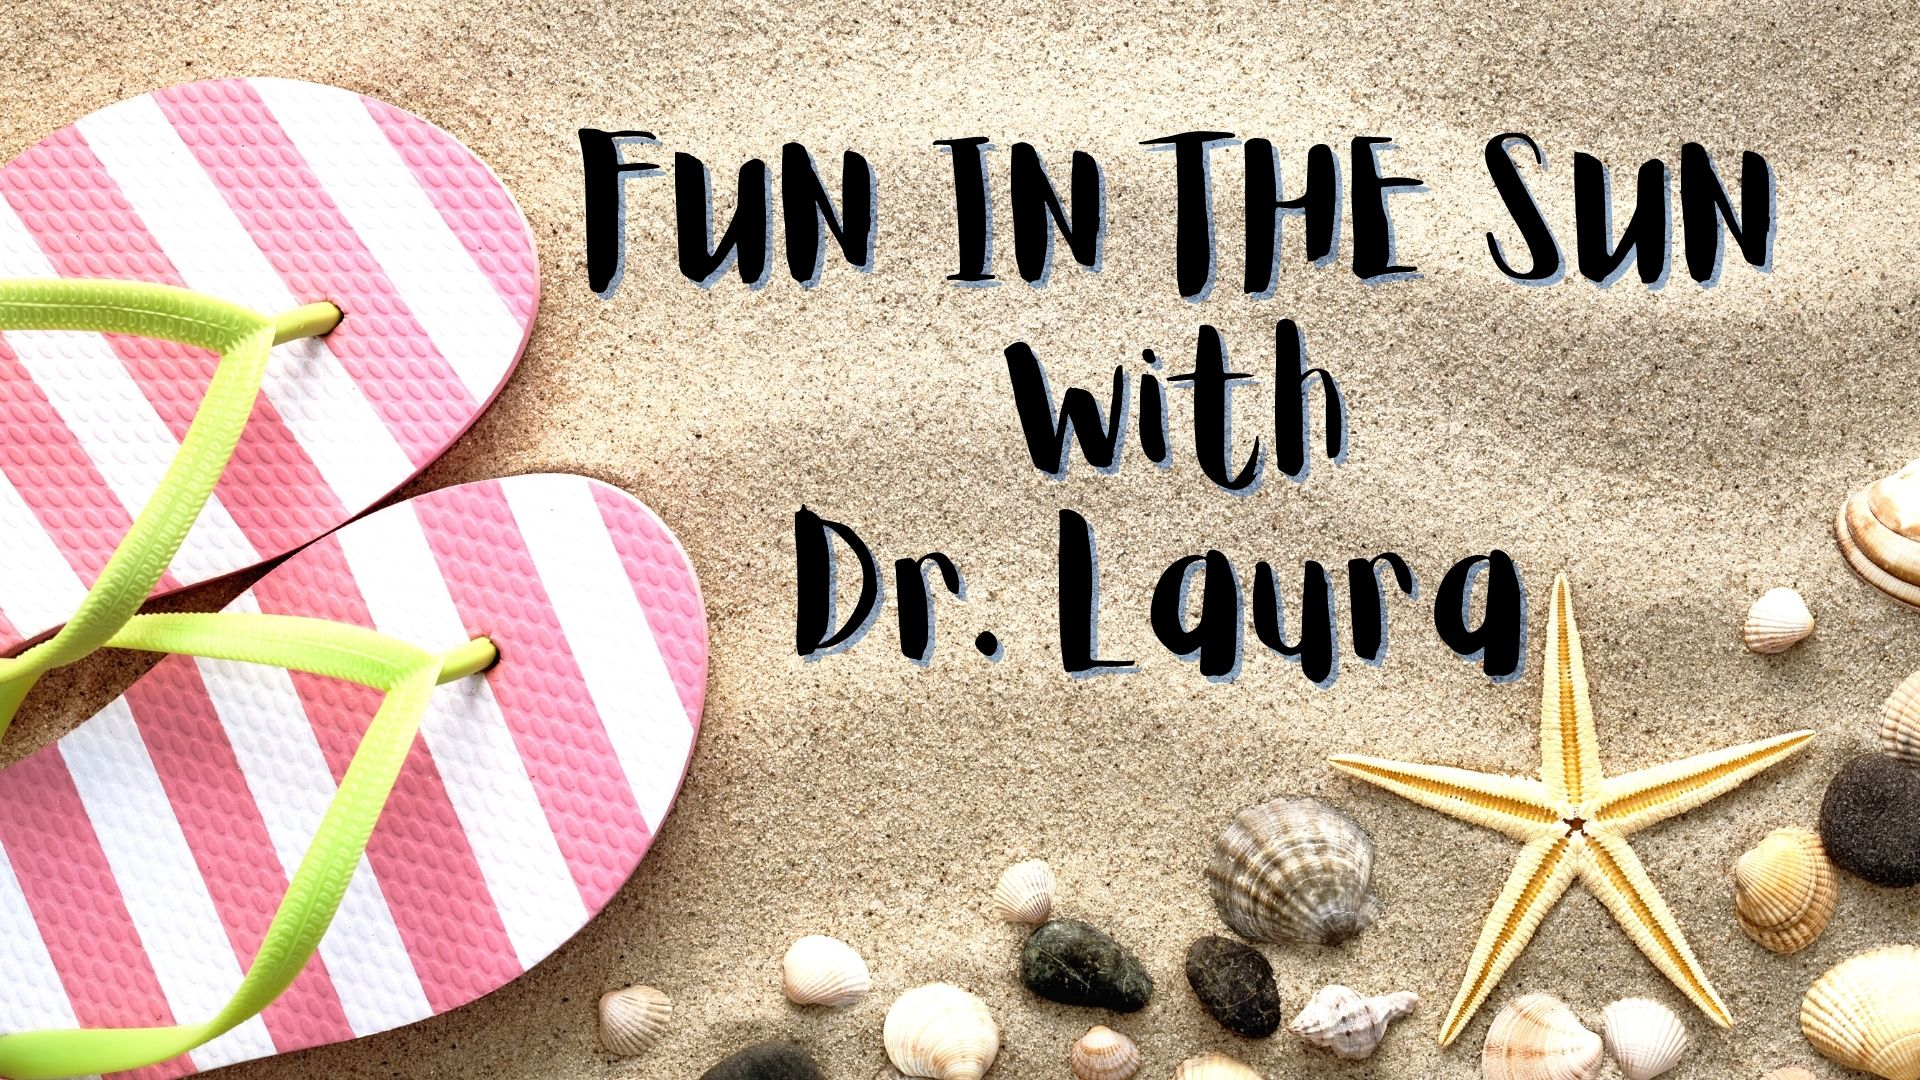 YouTube: Fun in the Sun with Dr. Laura